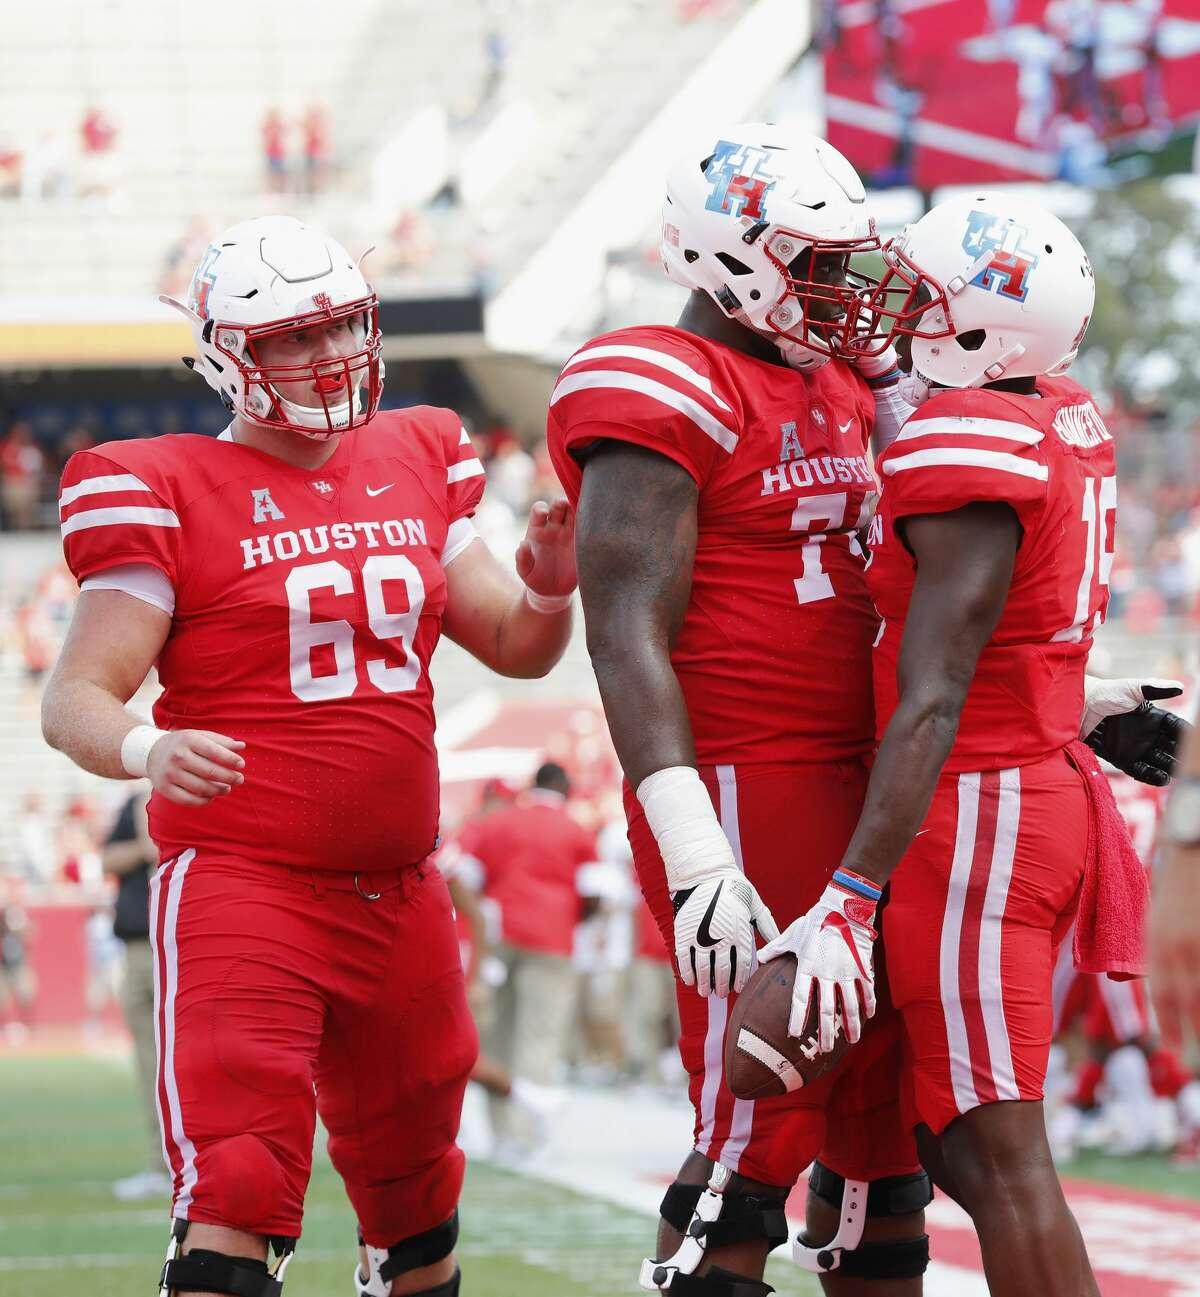 Houston Cougars offensive lineman Josh Jones (74) and offensive lineman Will Noble (69) celebrate with wide receiver Linell Bonner (15) after a touchdown in the fourth quarter during the NCAA football game between the Texas Tech Red Raiders and the Houston Cougars at TDECU Stadium in Houston, TX on Saturday, September 23, 2017.